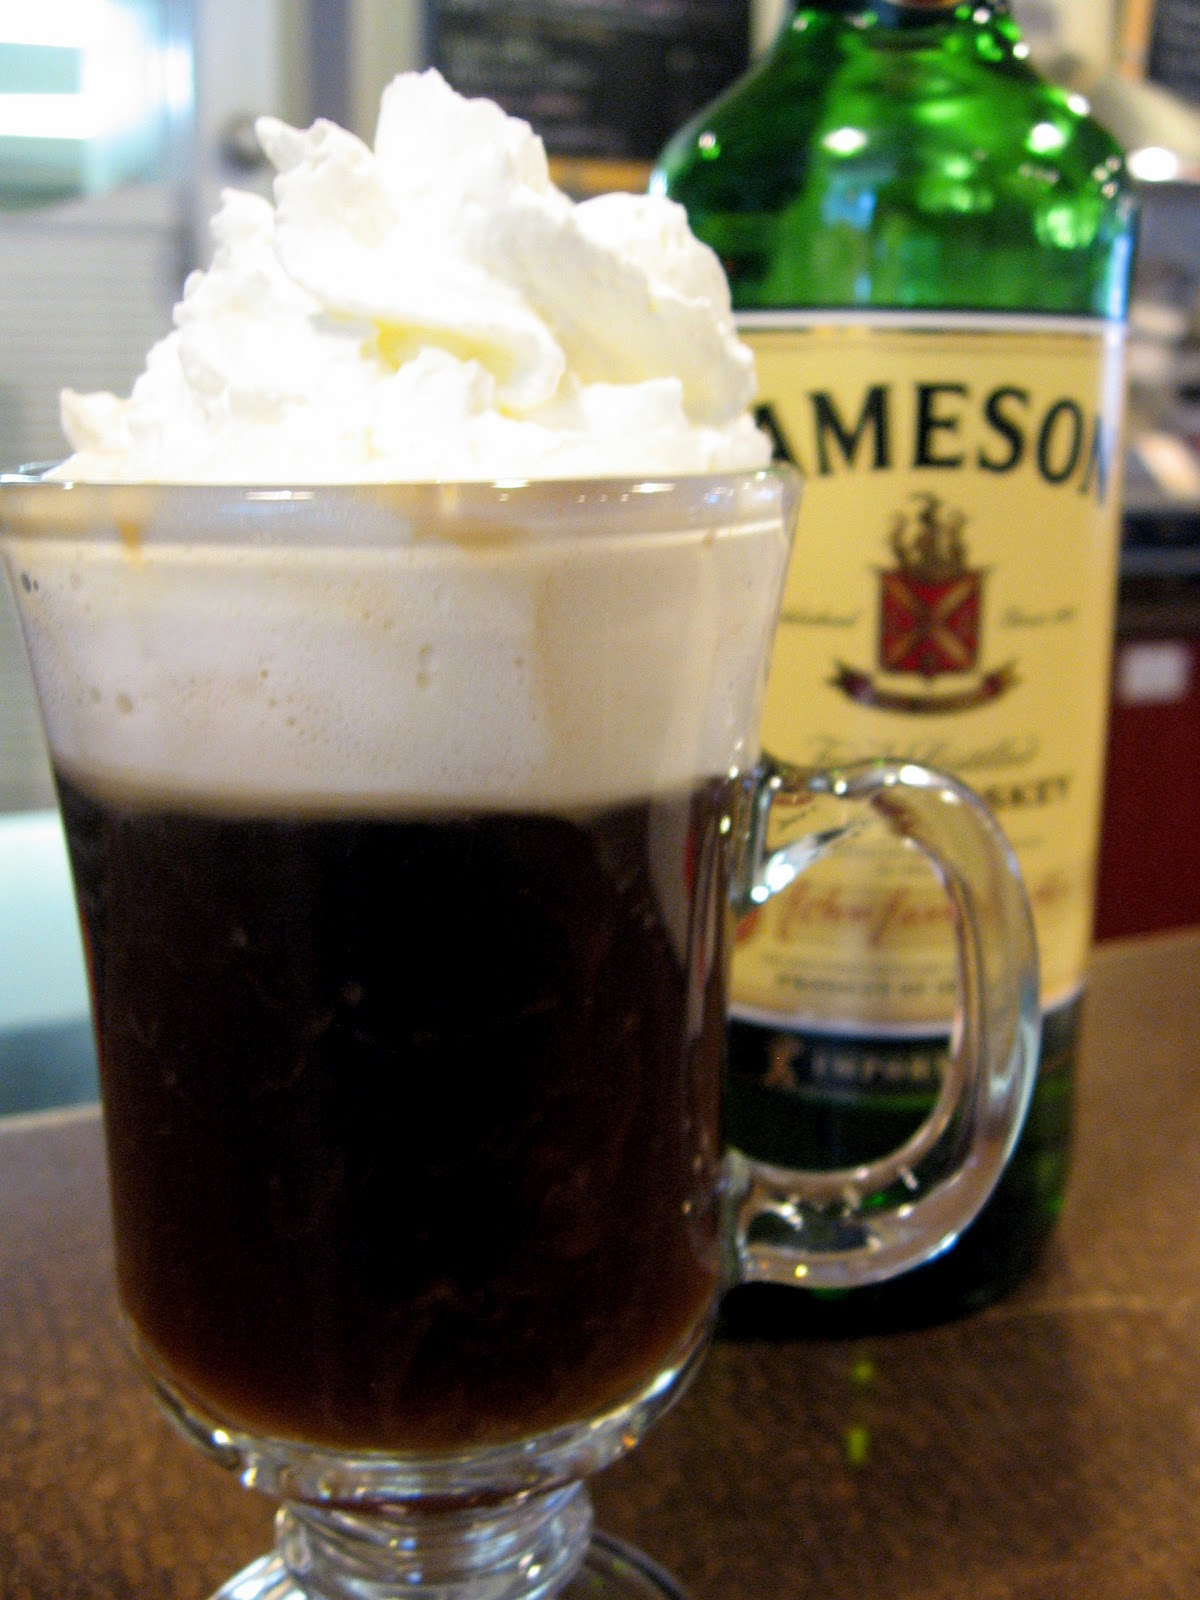 Irish coffee, which seems a sad ending for a good whiskey